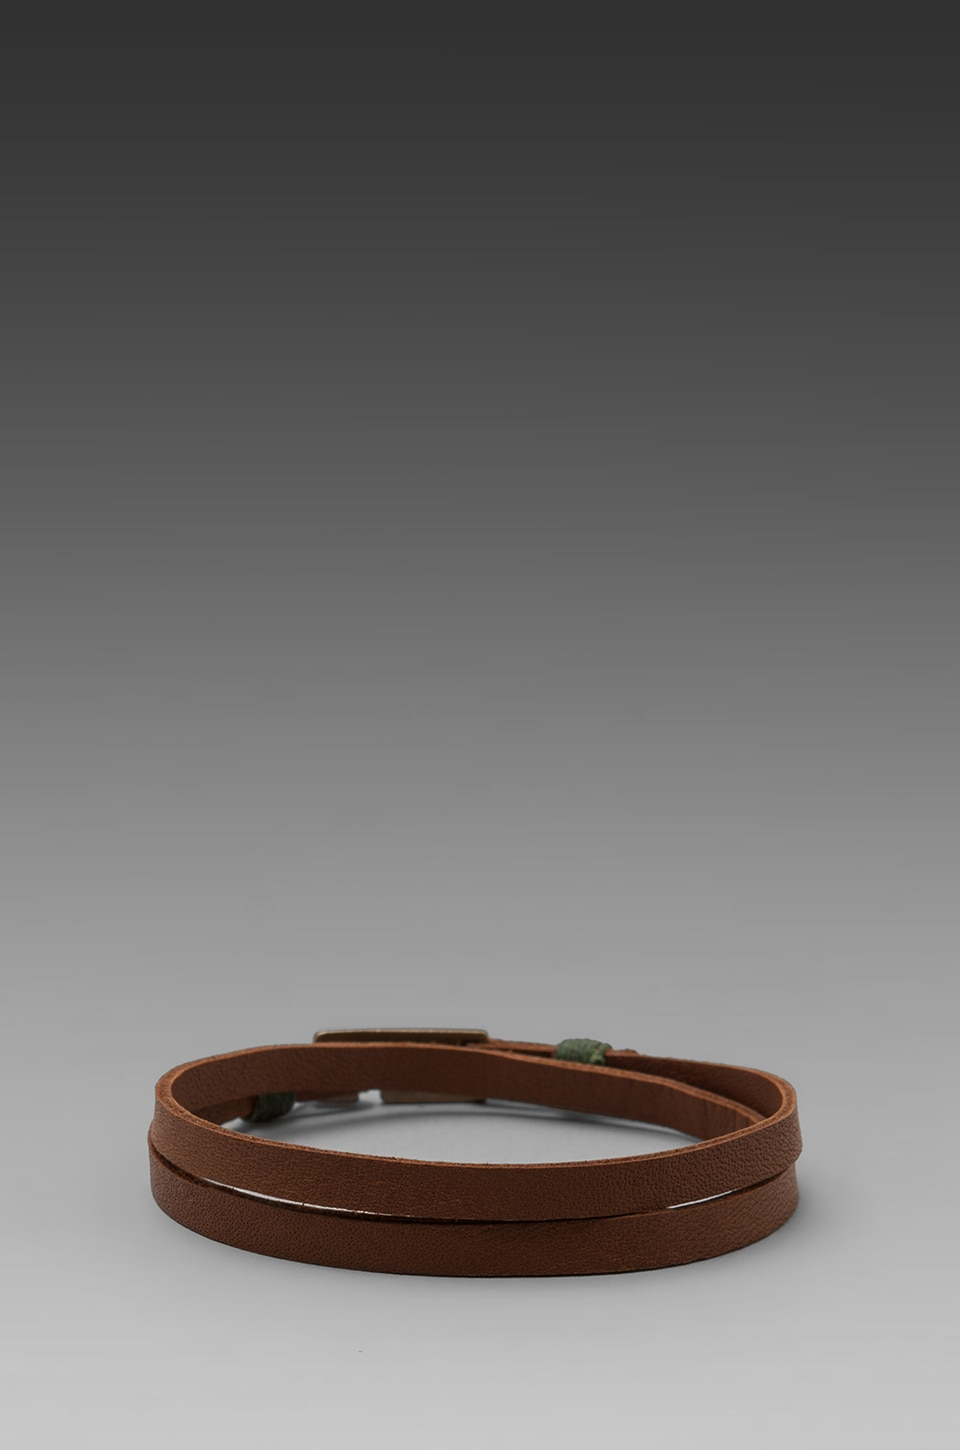 griffin Legend Leather Double Wrap Bracelet in Tan